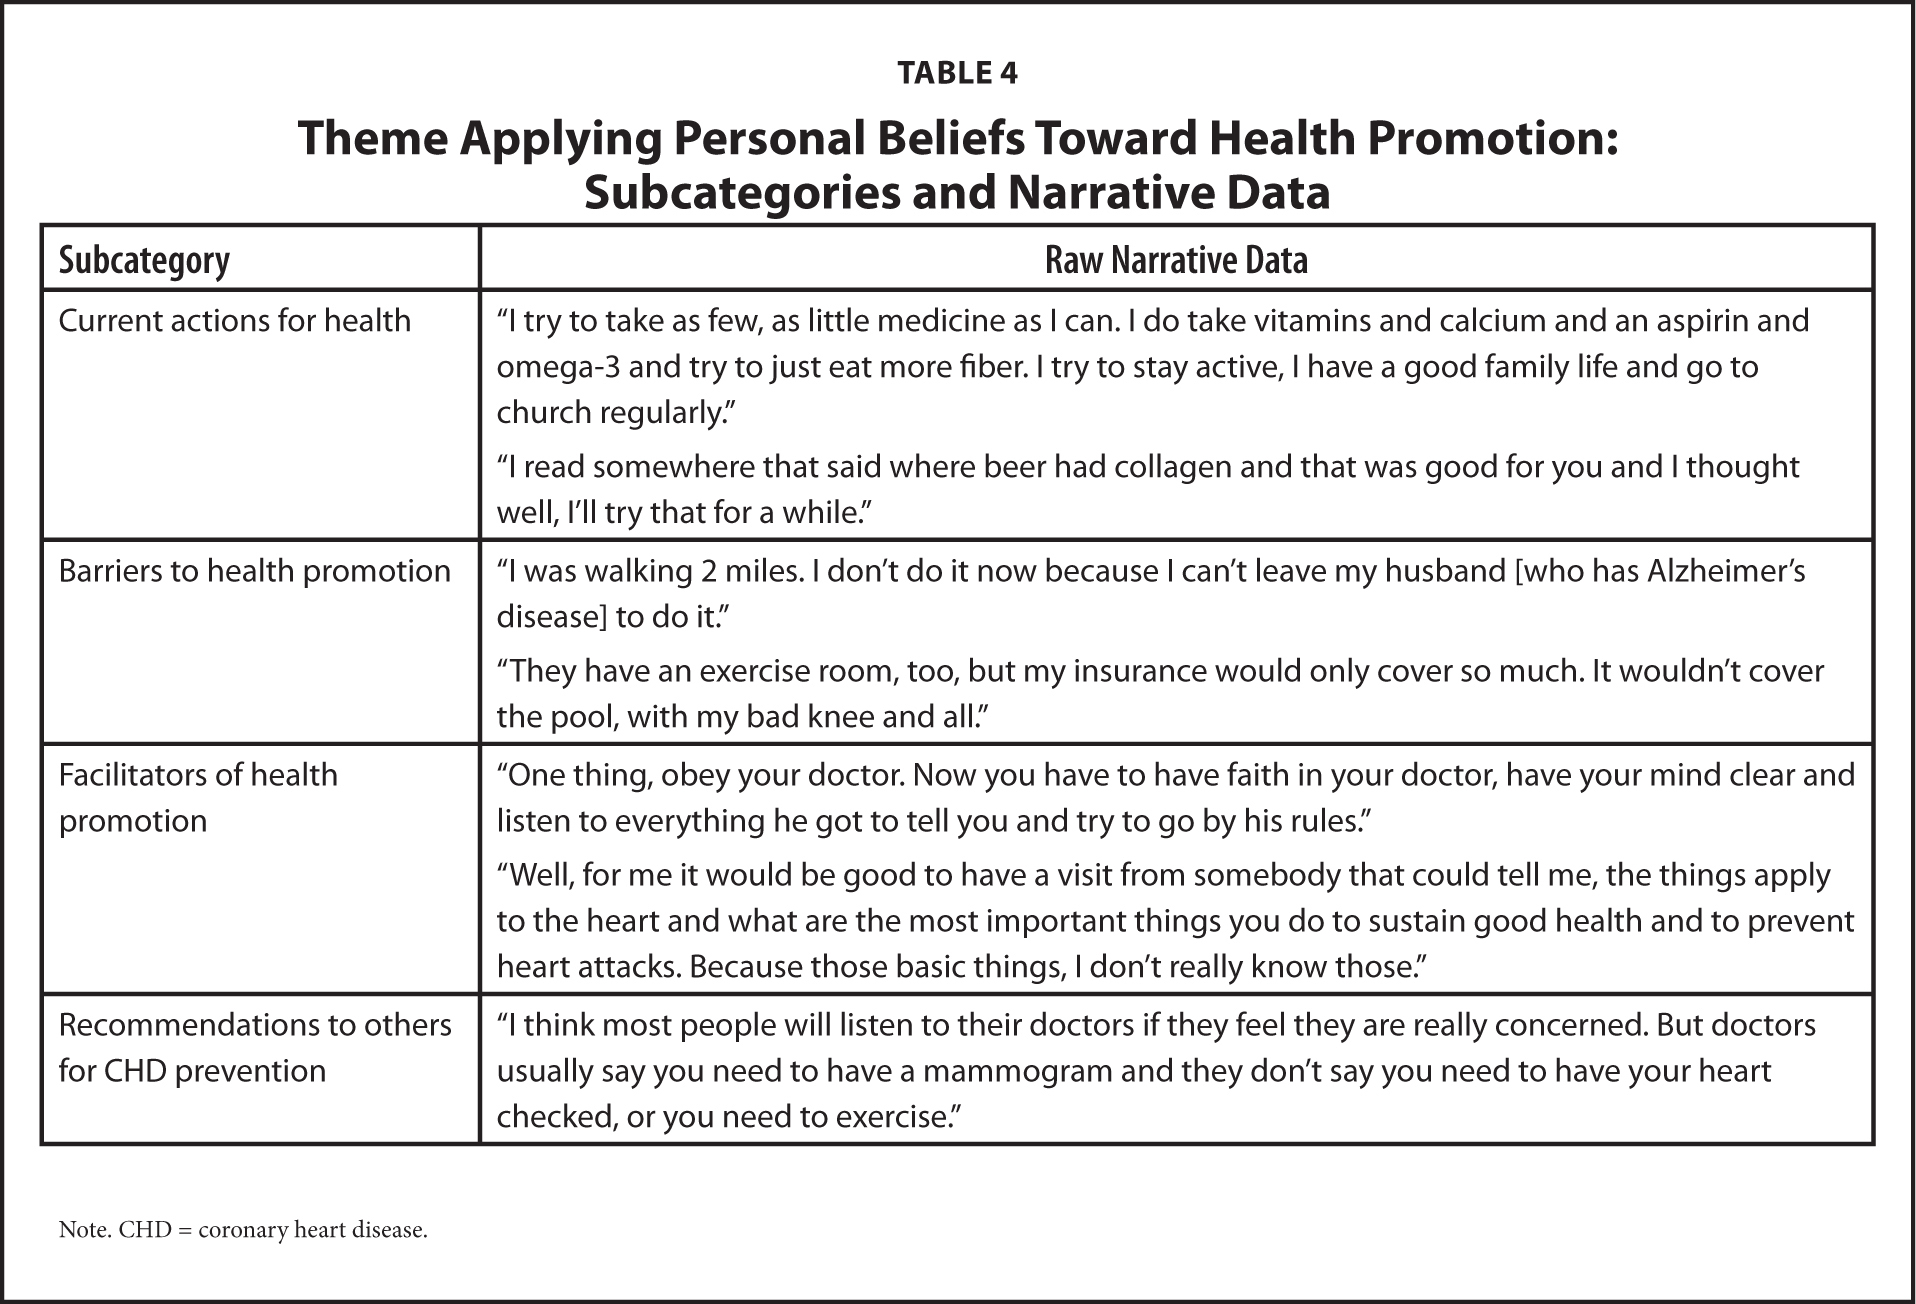 Theme Applying Personal Beliefs Toward Health Promotion: Subcategories and Narrative Data